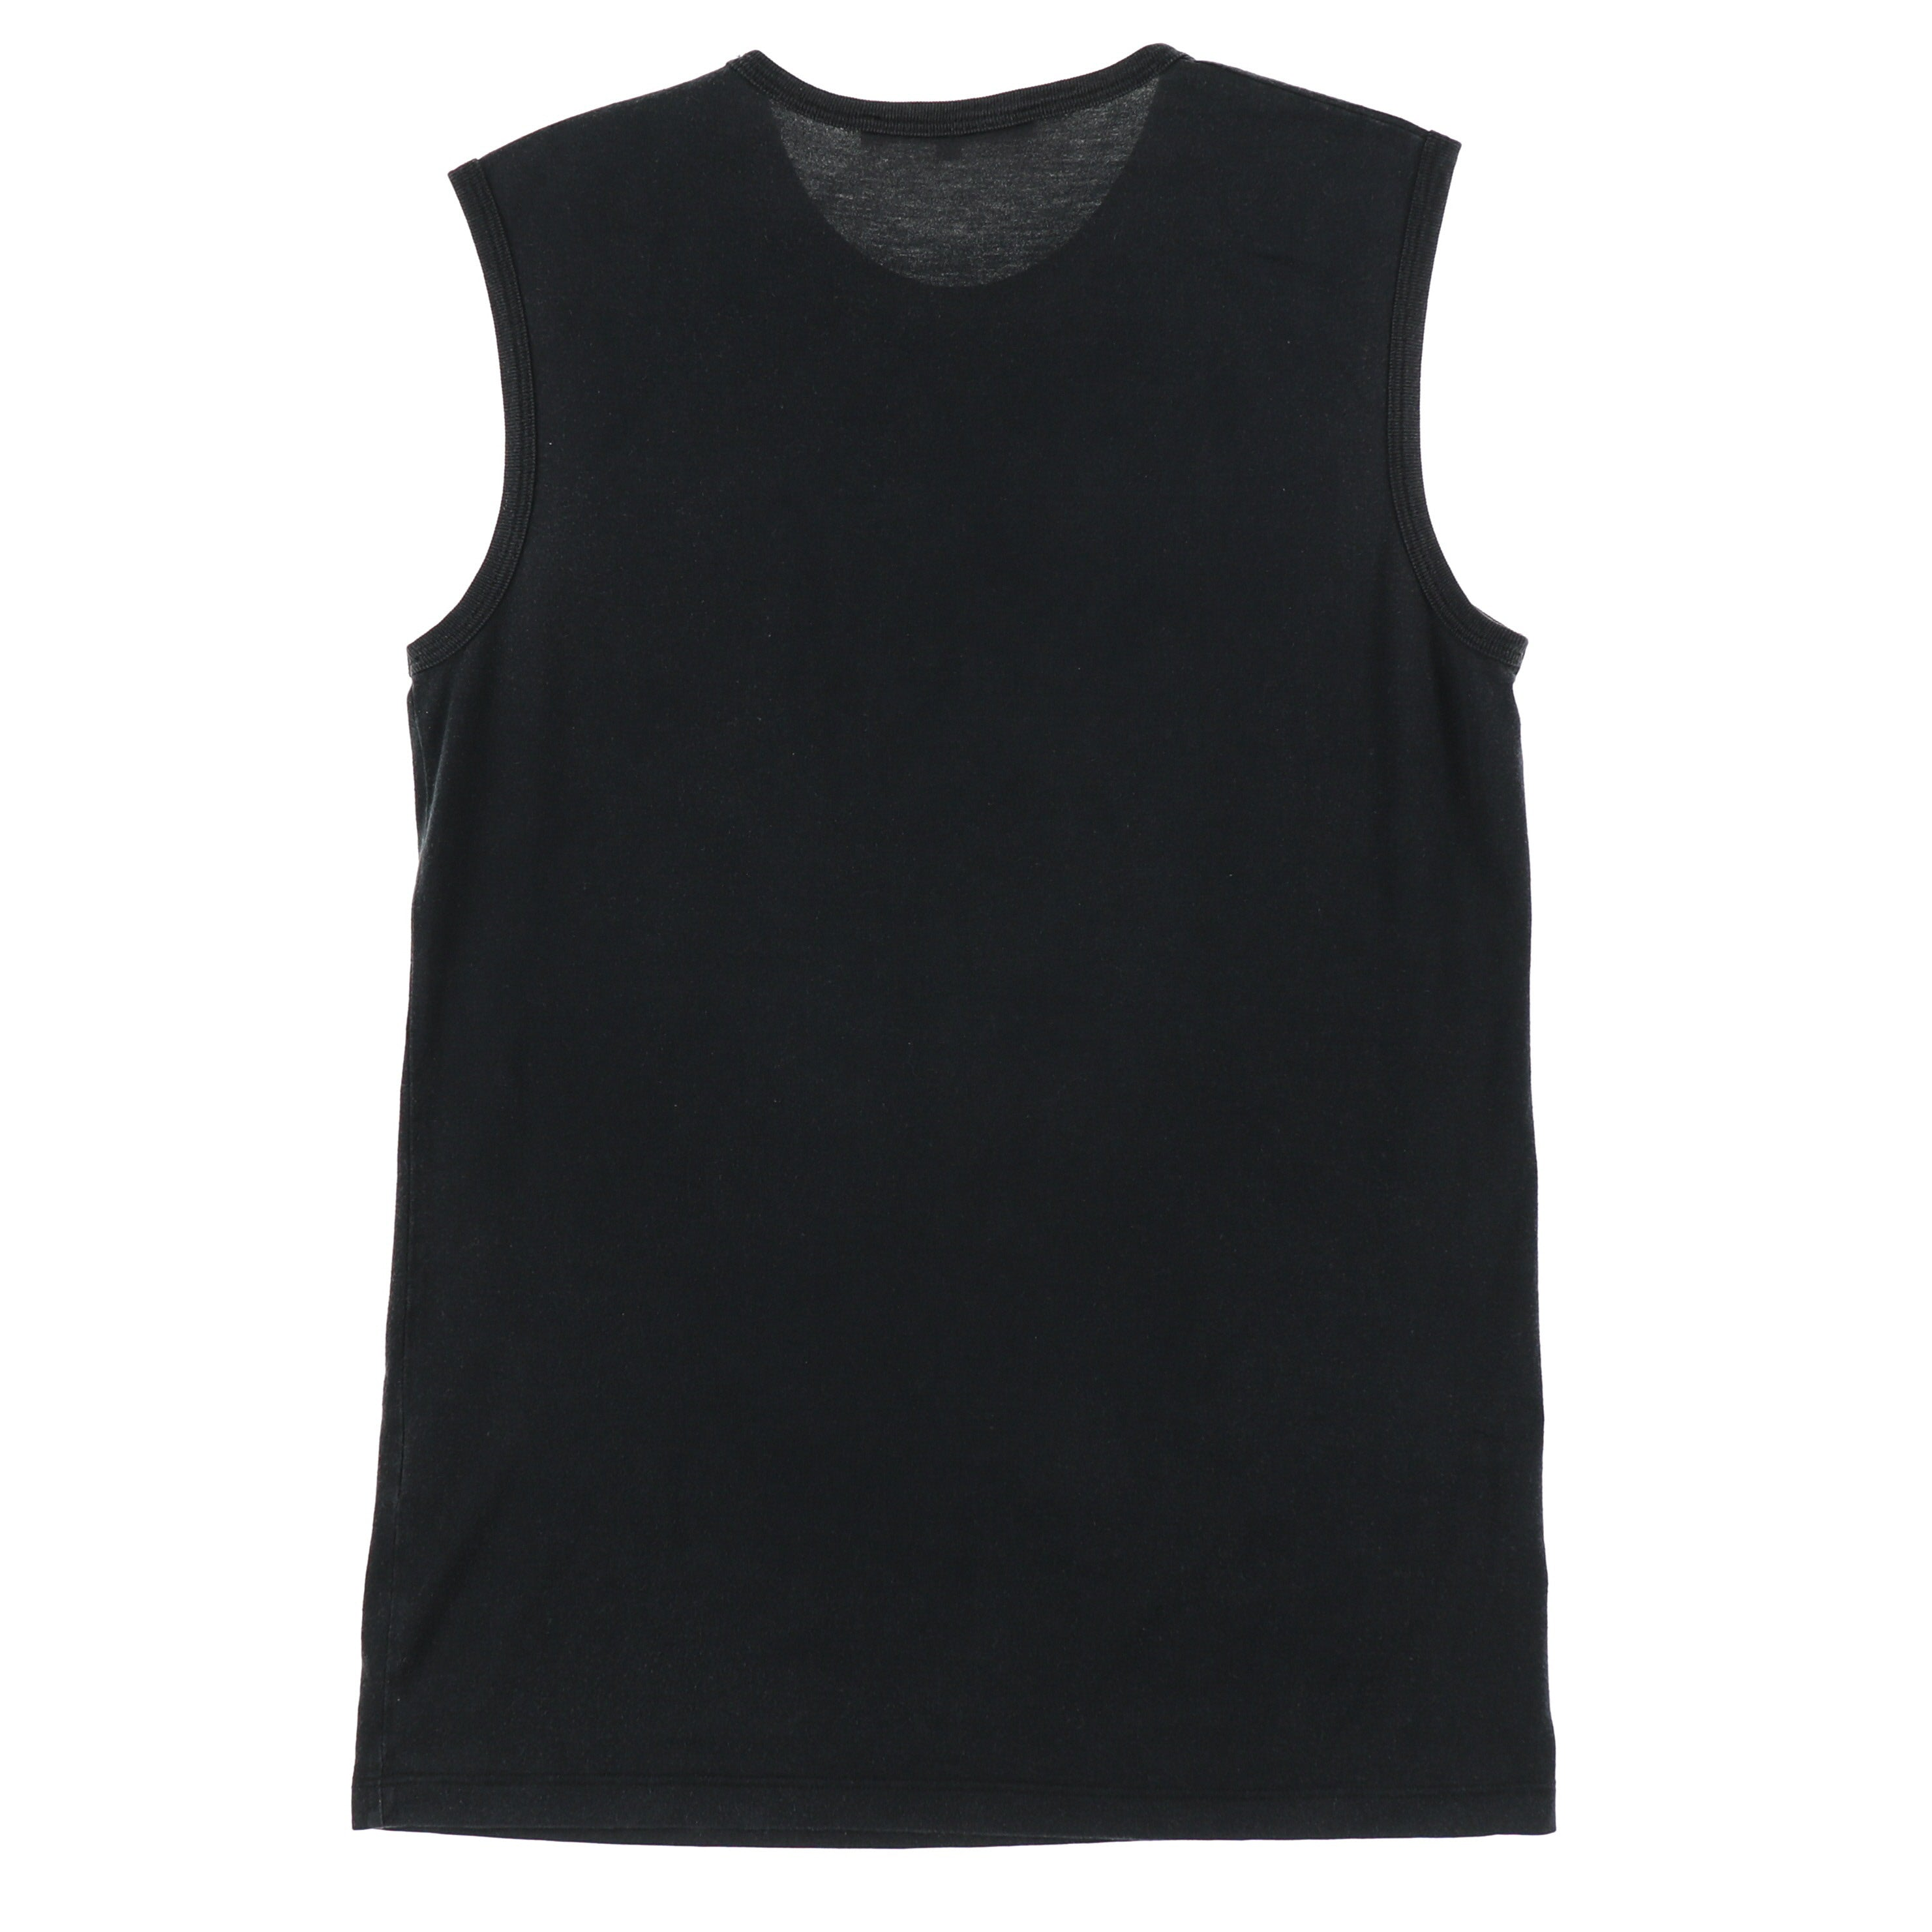 MMDCCLIX NO SLEEVES TEE